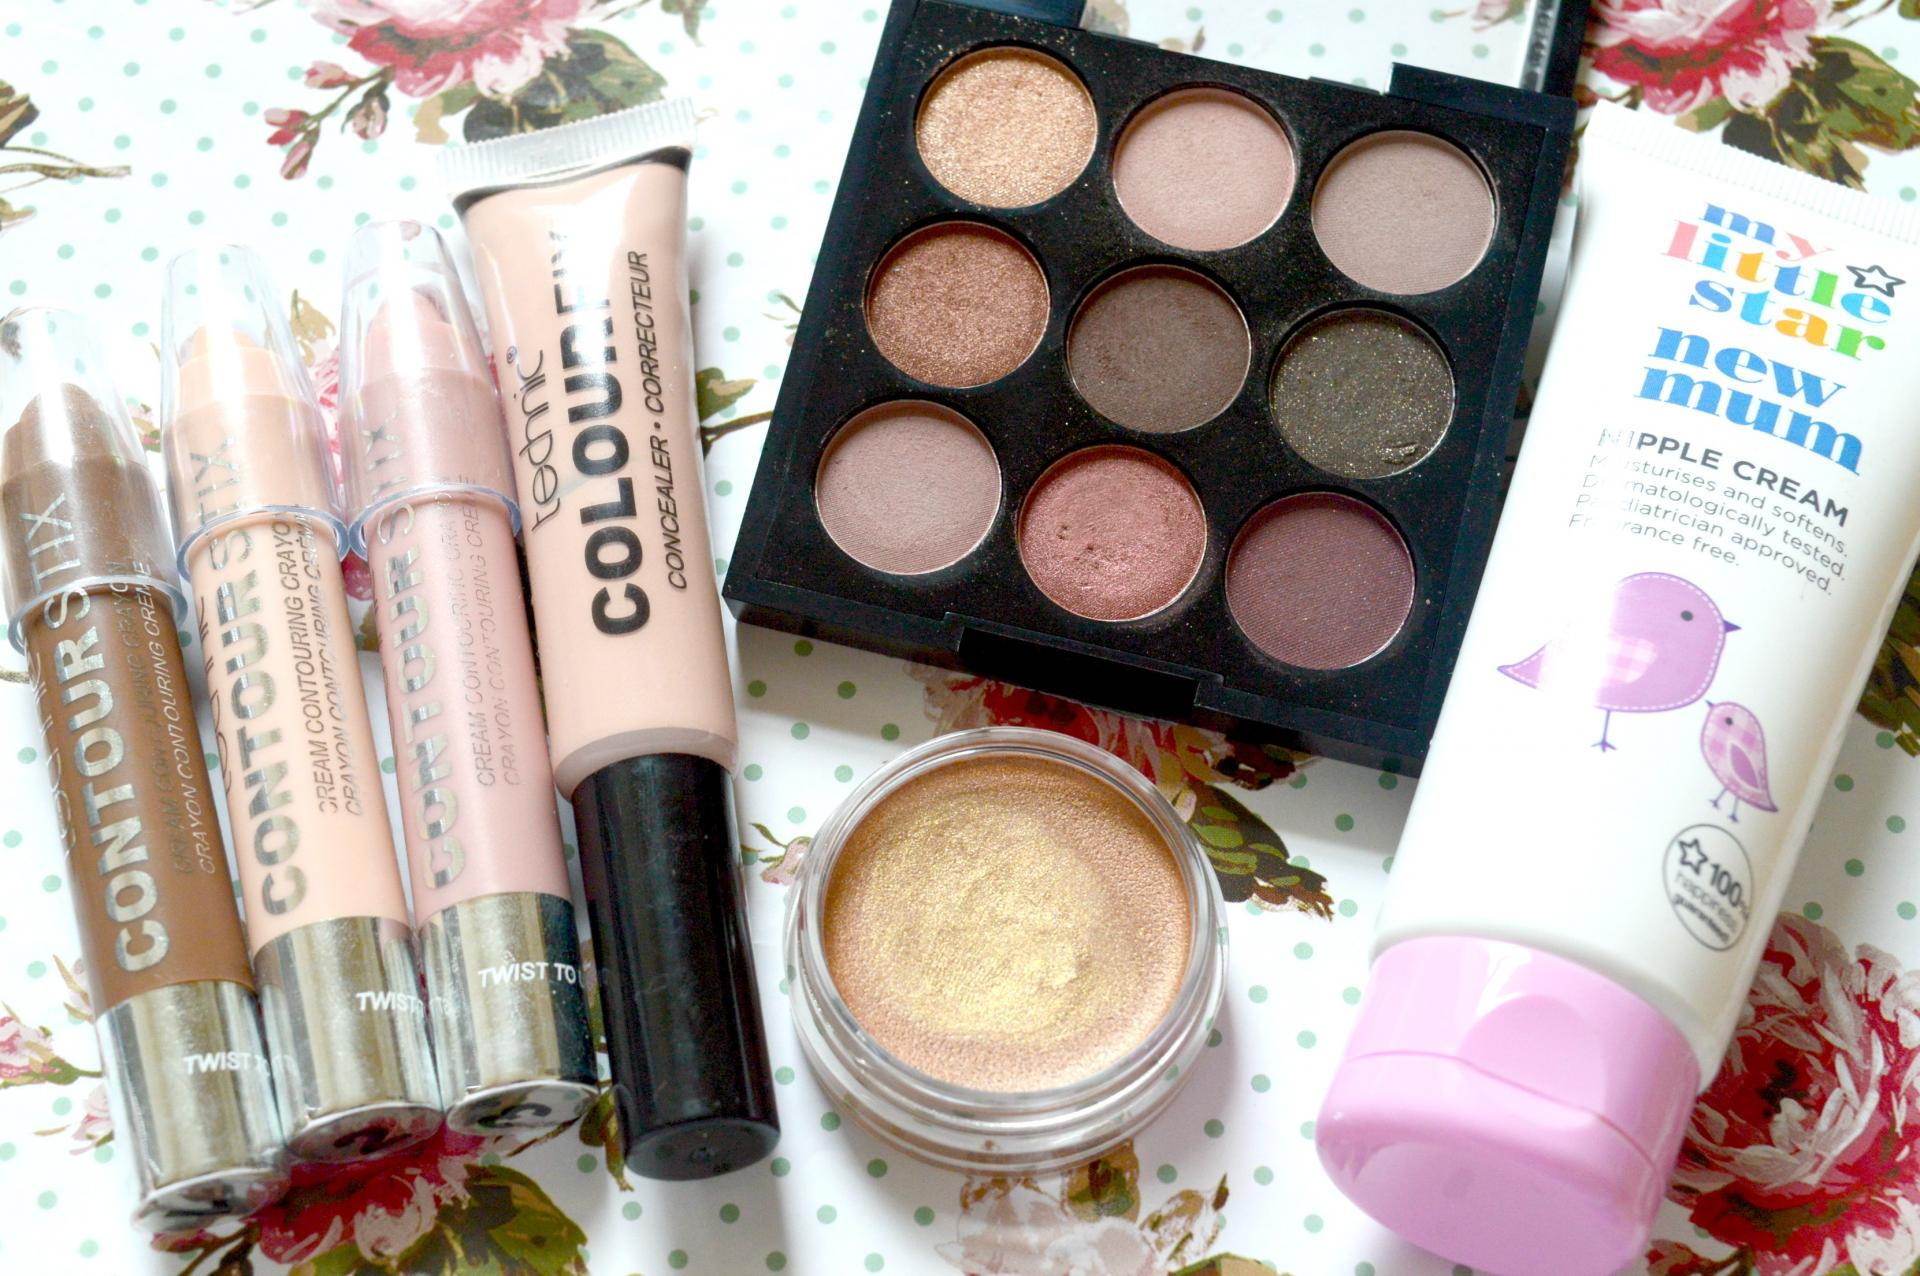 August 2016 Favourites | Technic Contour Stix, Technic Colour Fix Concealer, W7 The Naughty Nine Mid Summer Nights Palette, Bourjois 24H Colour Edition Cream To Powder Eyeshadow in Or Desir and Superdrug My Little Star New Mum Nipple Cream